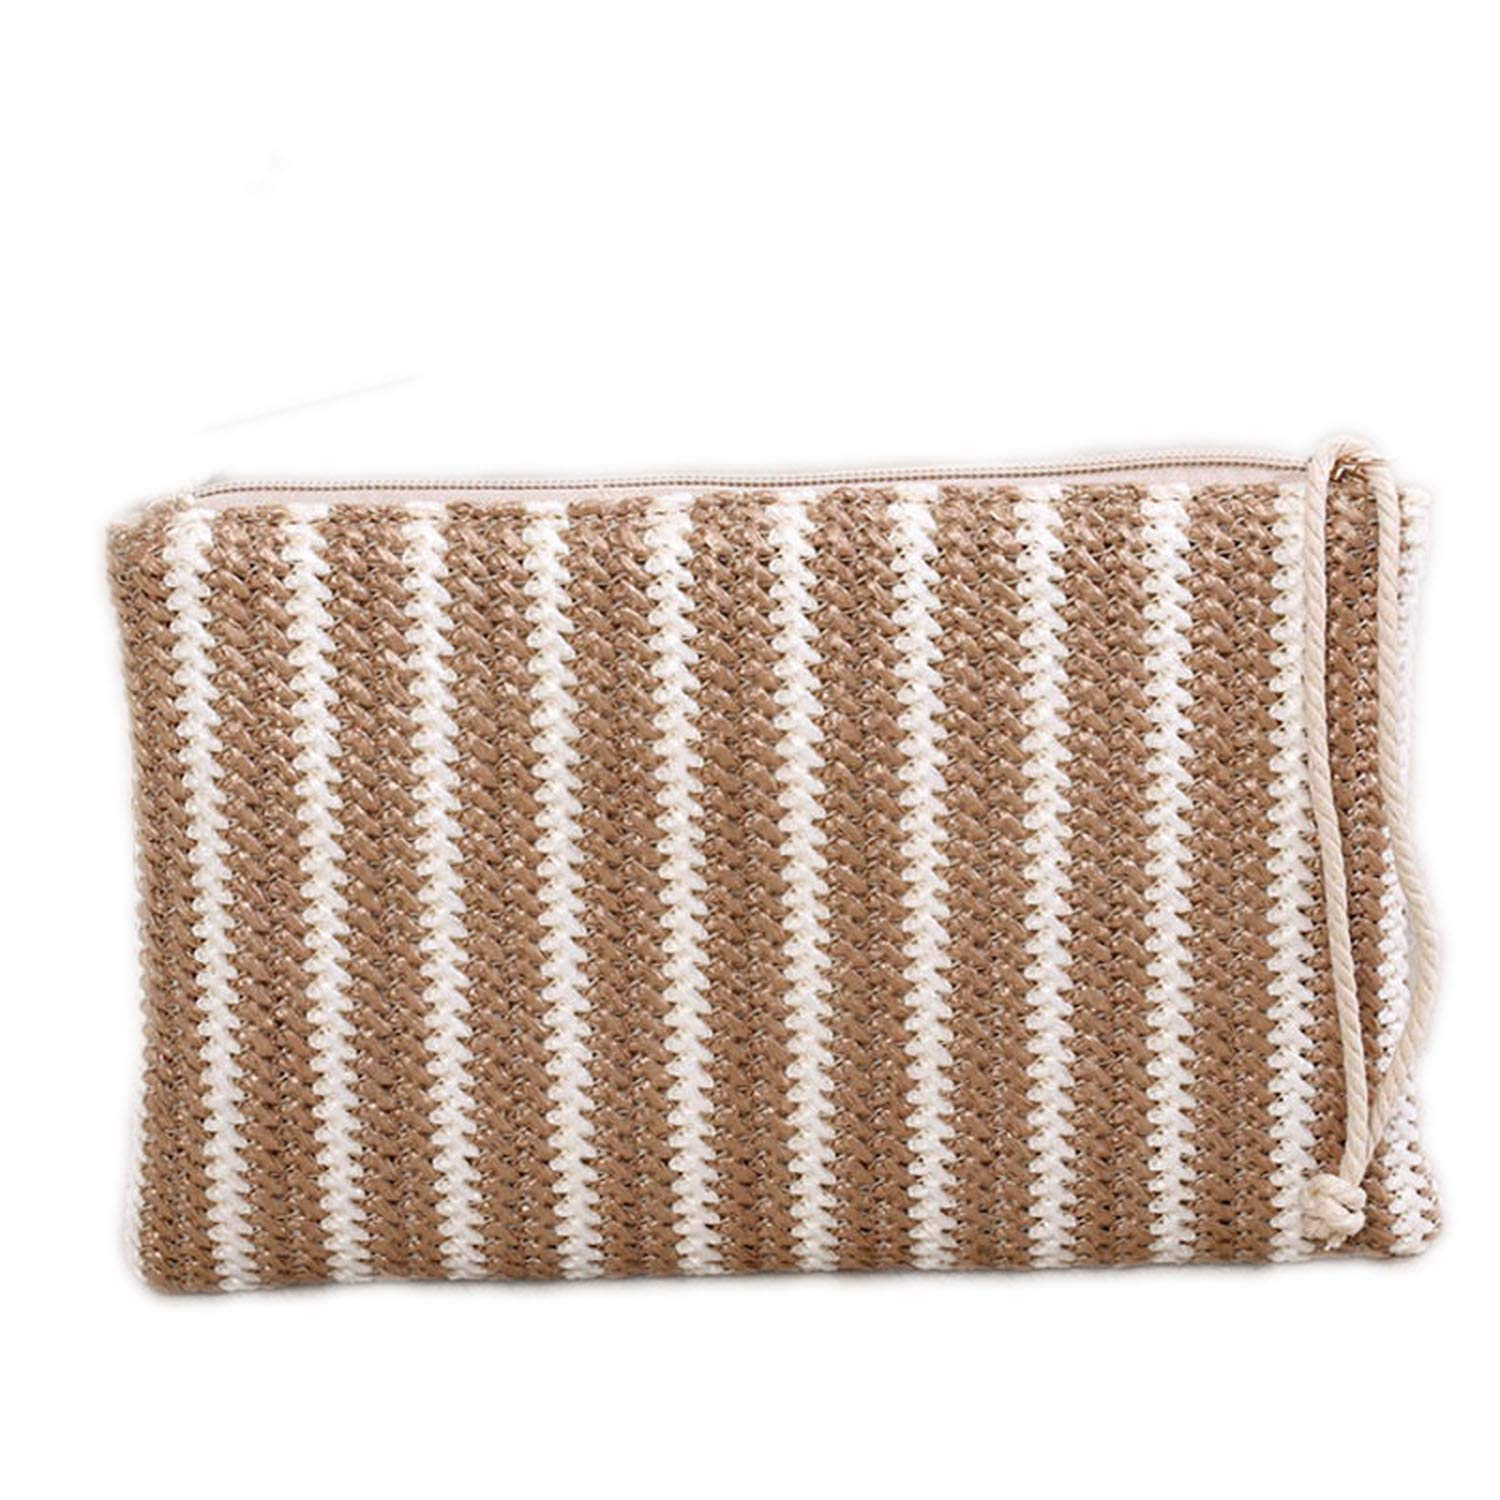 Women Daily Clutch Bag Ins...